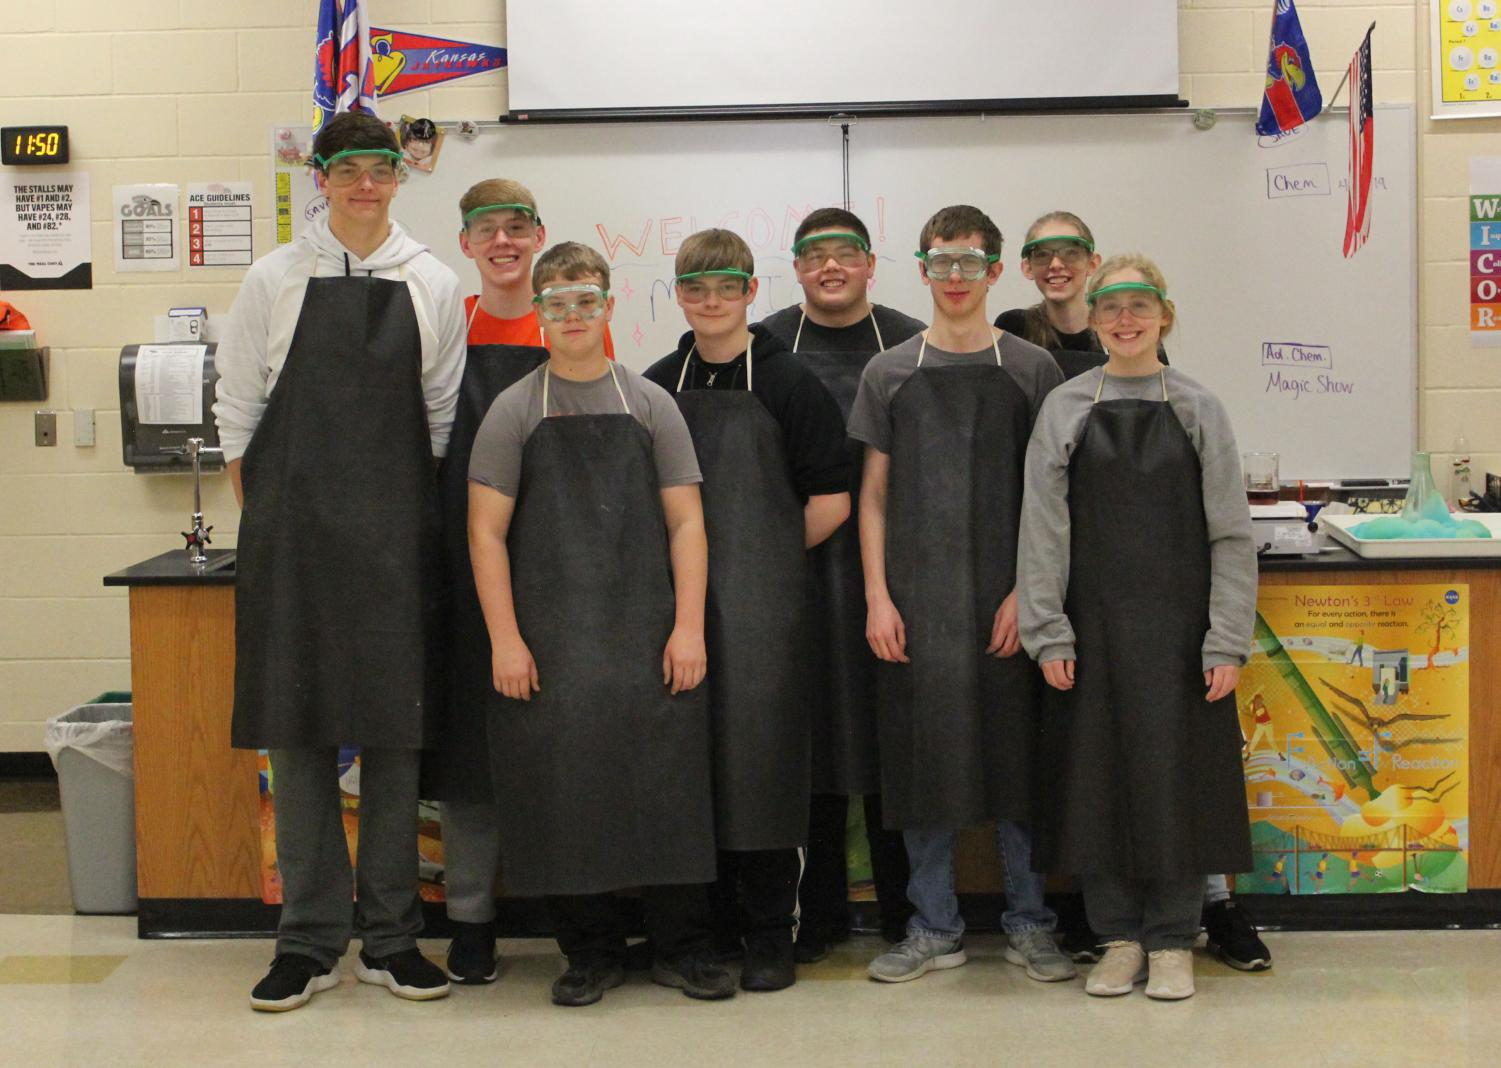 Advanced+chemistry+students+stand+in+front+of+science+teacher+Ericka+Richardson%E2%80%99s+lab+table+after+performing+their+experiments+for+elementary+students.+The+magic+show+took+place+April+4+from+11+a.m+to+noon+in+Richardson%E2%80%99s+classroom.+